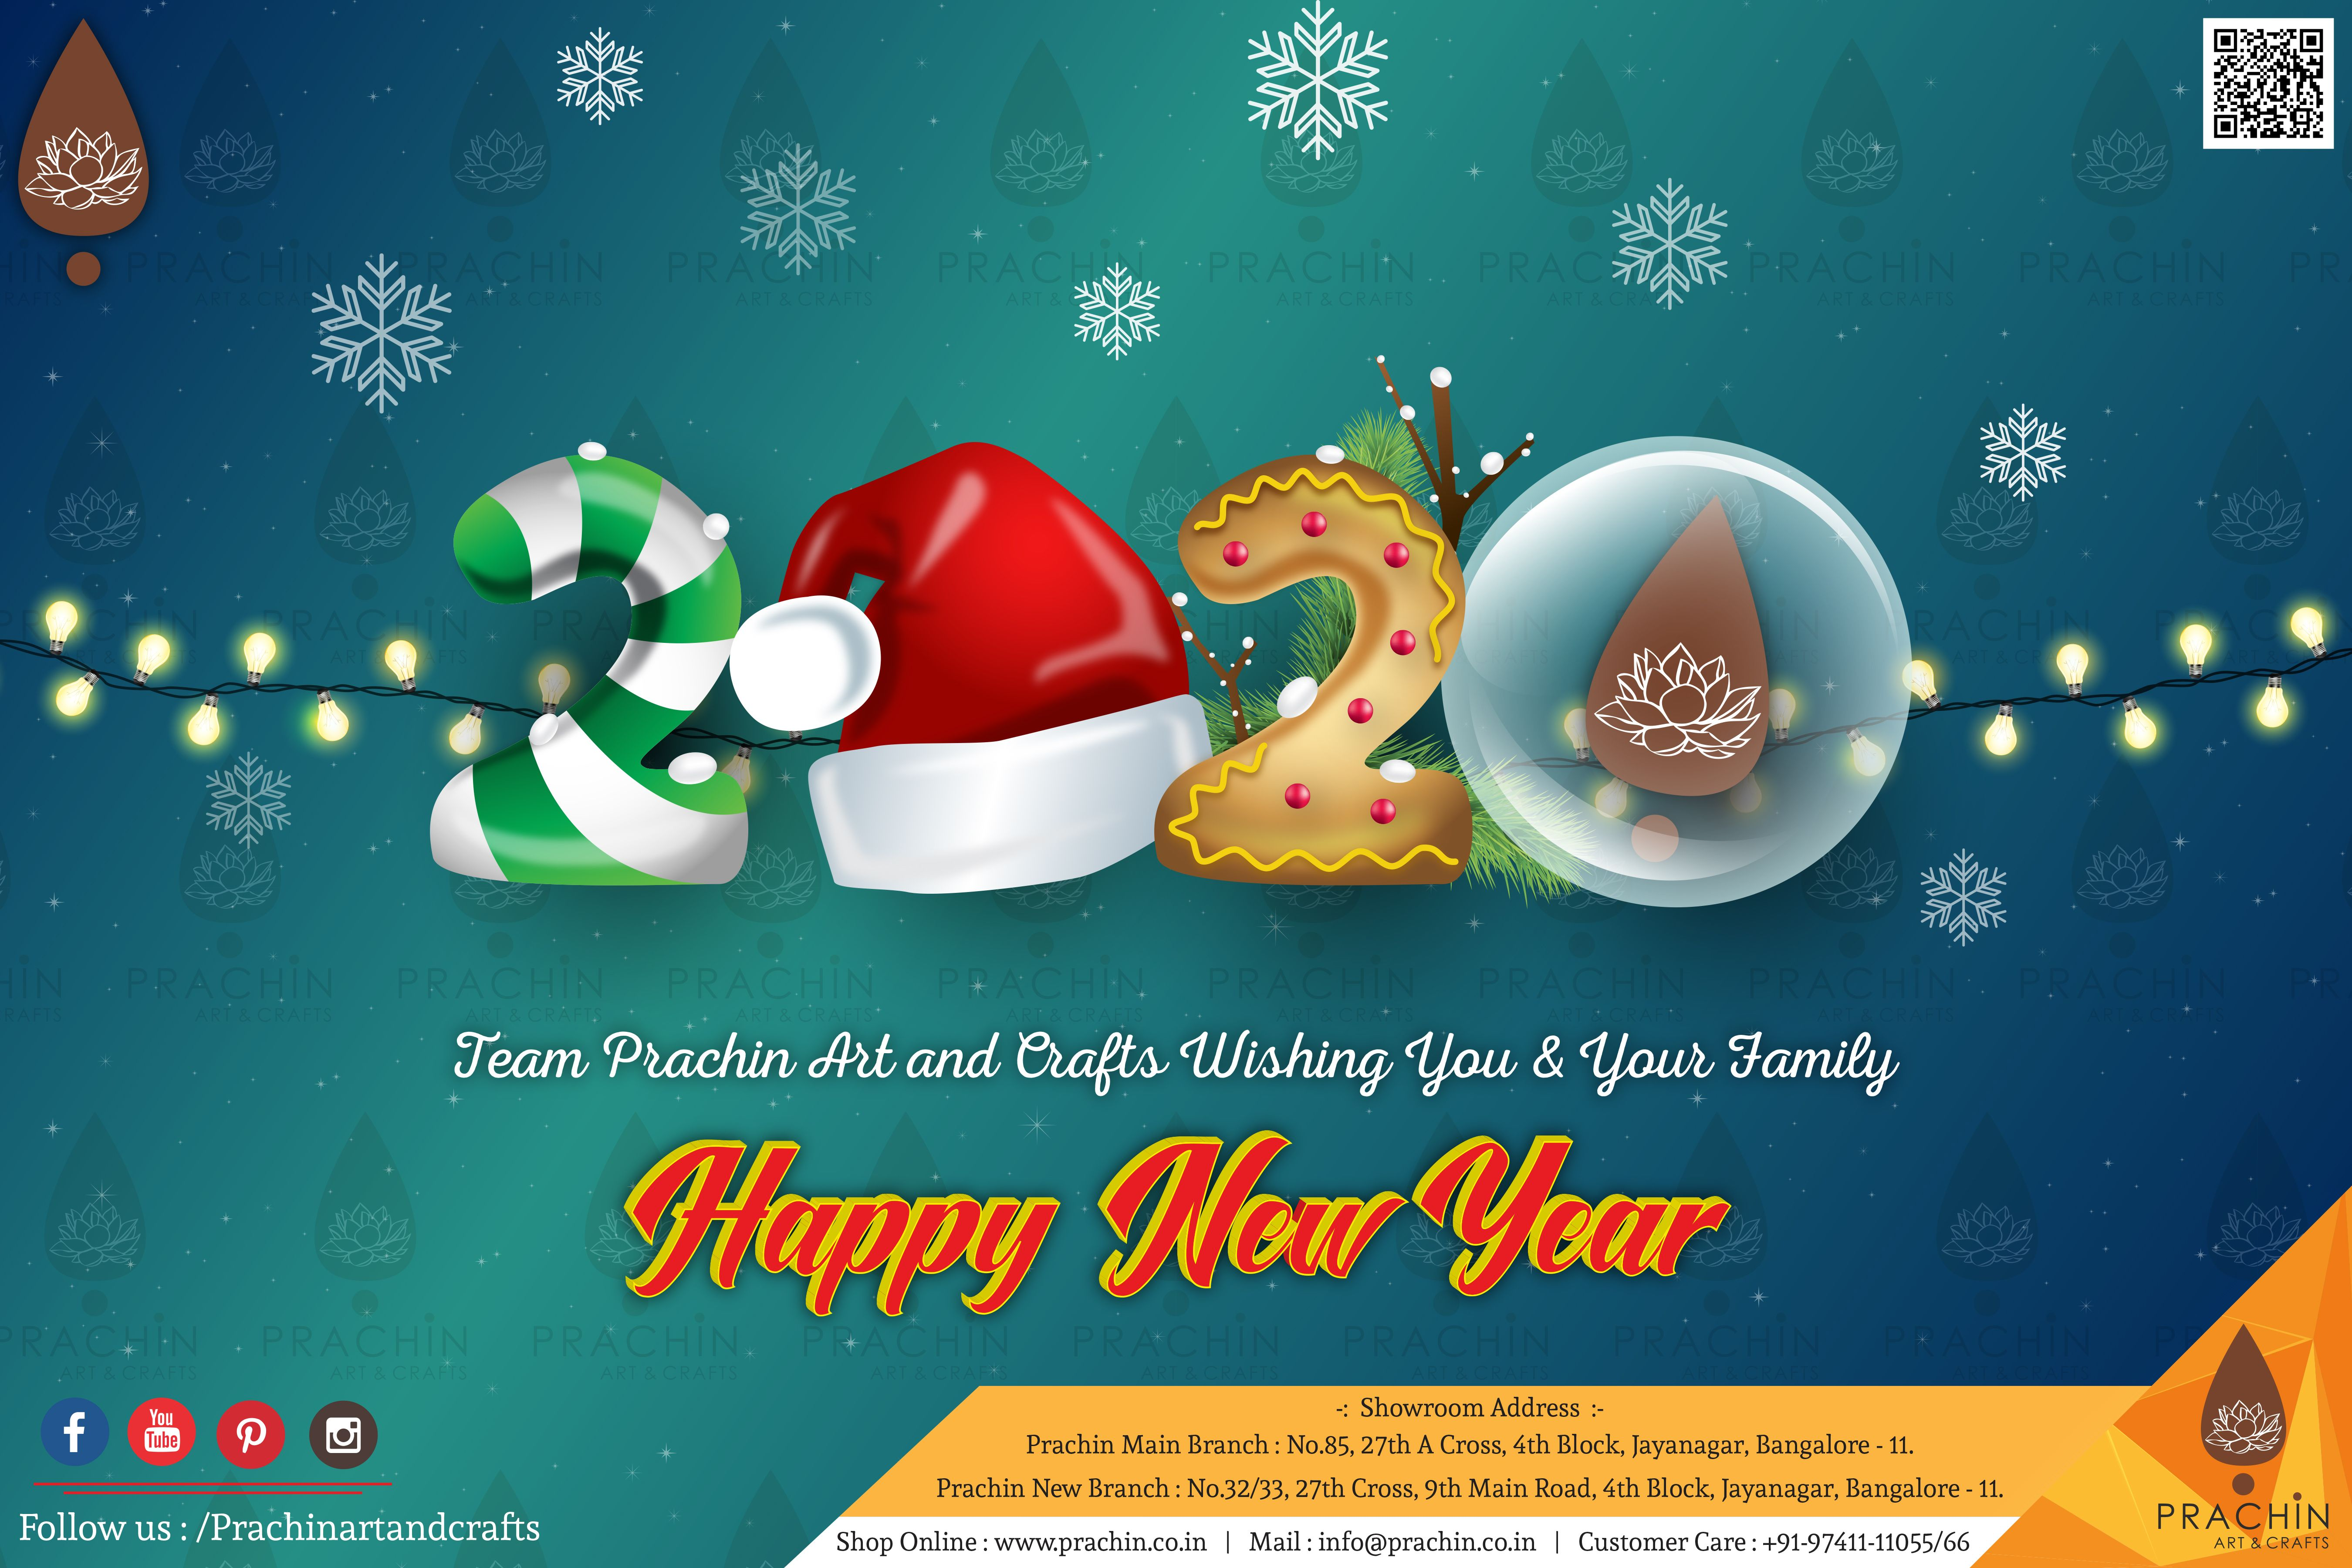 Team Prachin Art Crafts Wishing You And Your Family Happy New Year 2020 Happy New Year 2020 Crafts Arts And Crafts